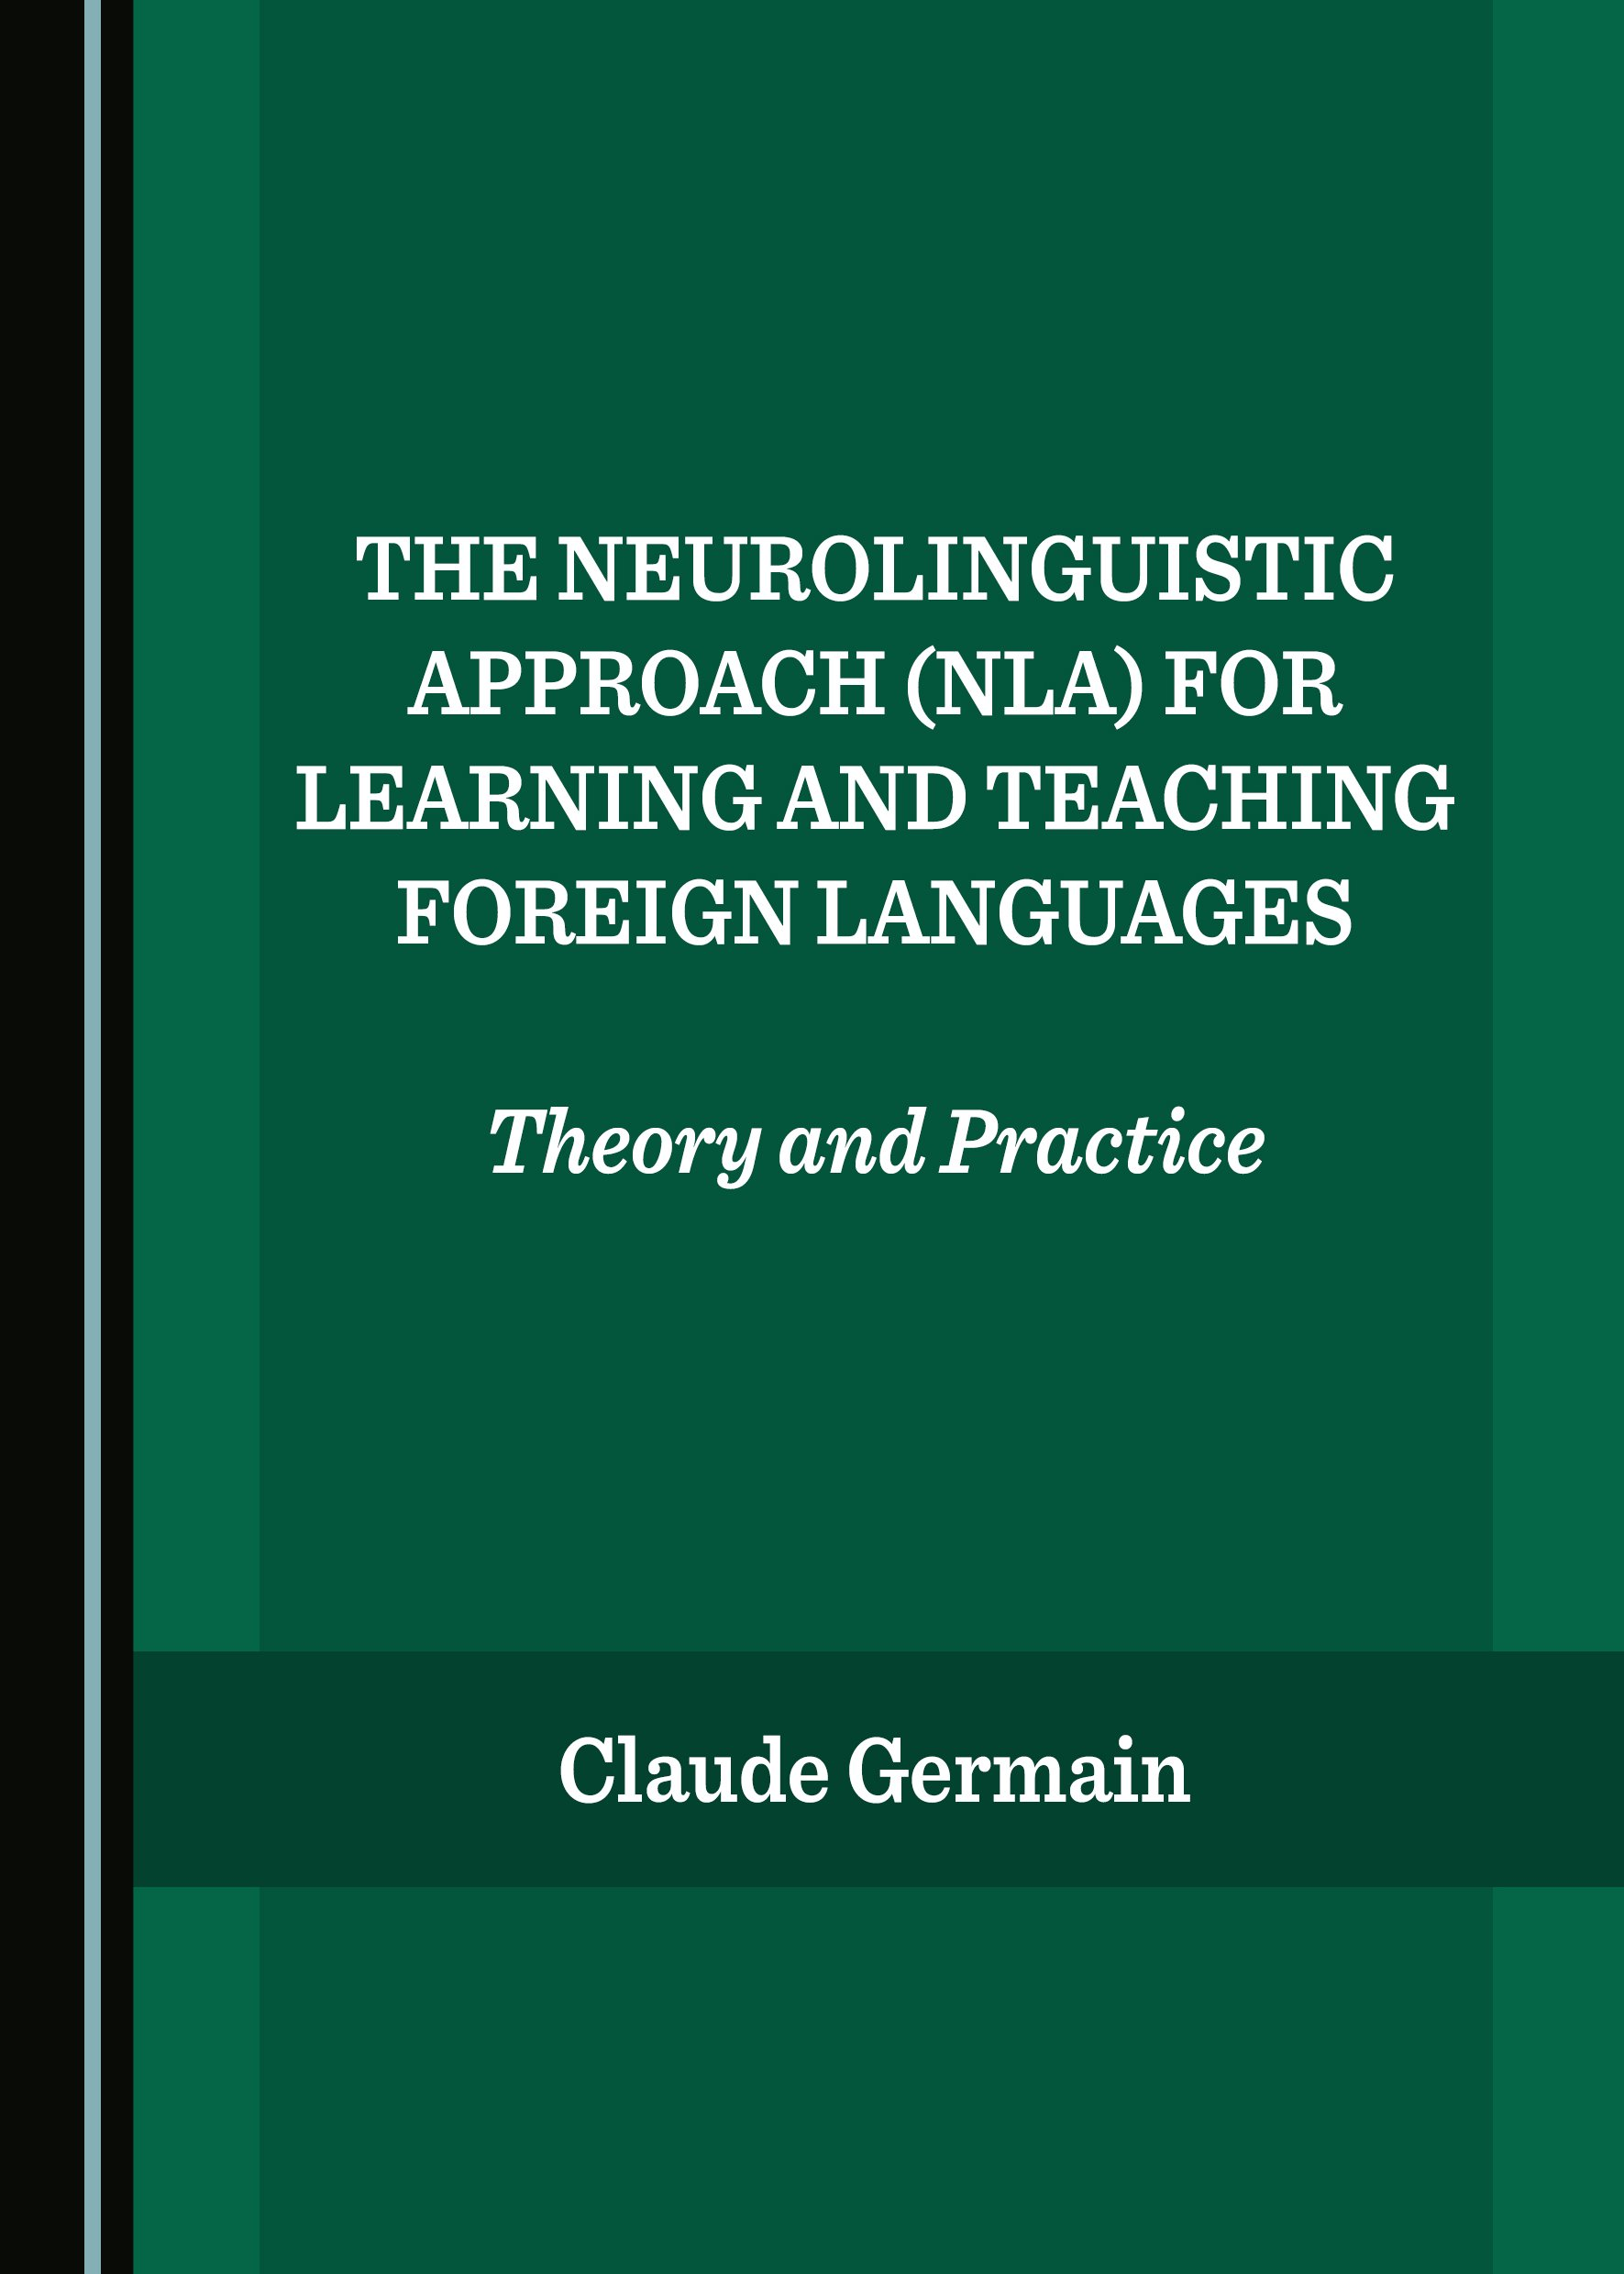 The Neurolinguistic Approach (NLA) for Learning and Teaching Foreign Languages: Theory and Practice